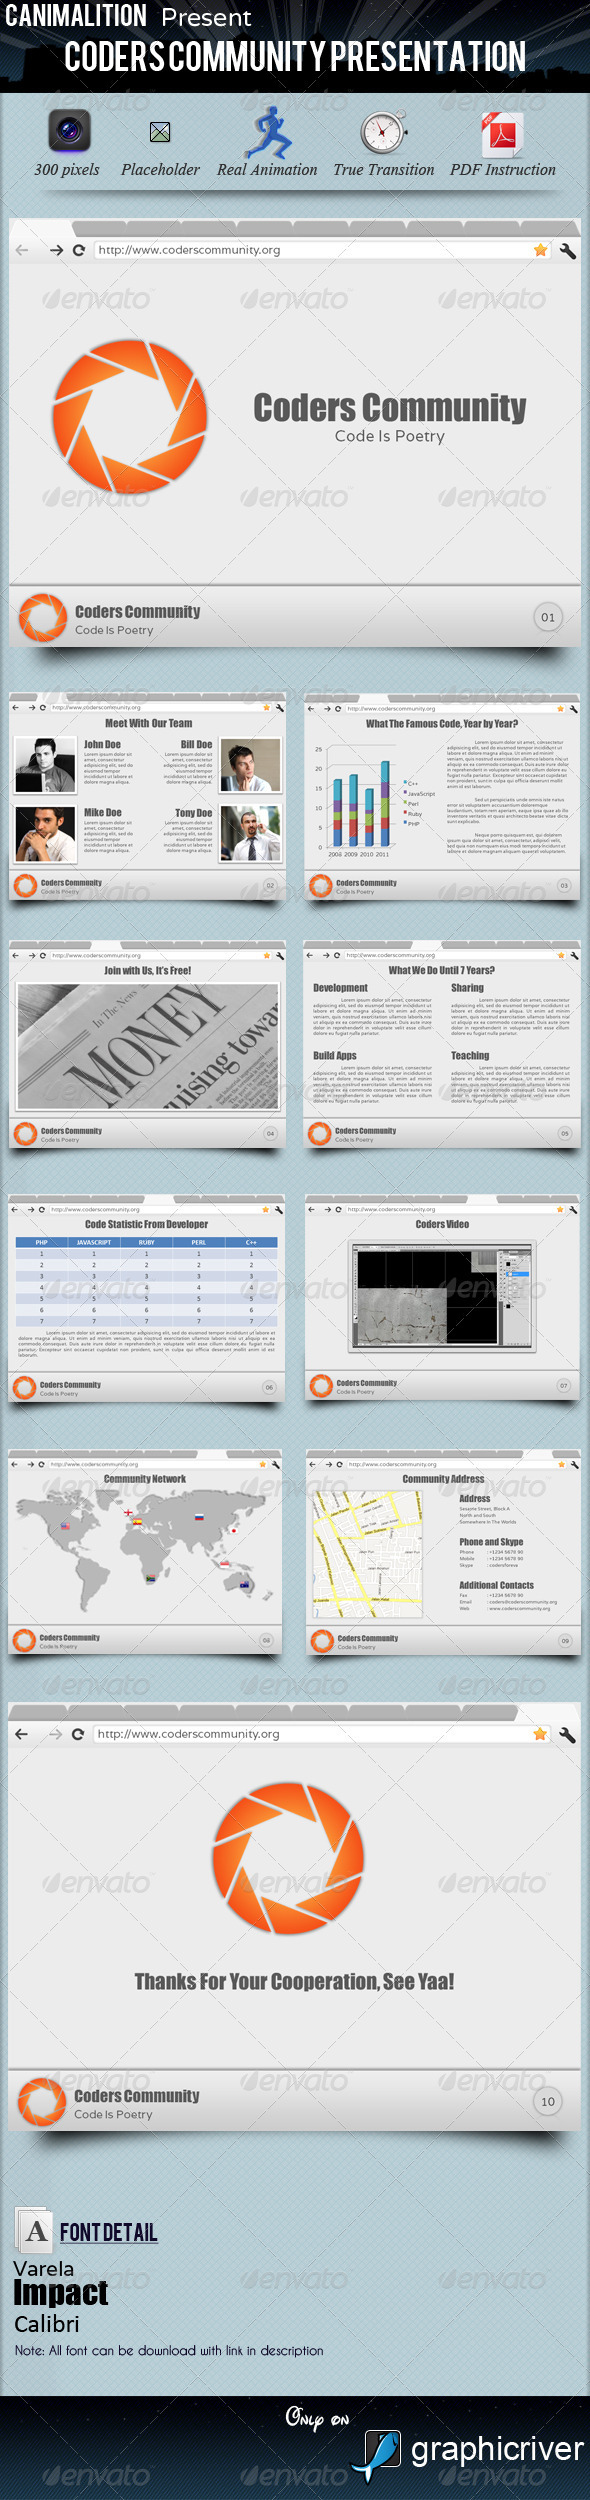 Coders Community Presentation Templates - Powerpoint Templates Presentation Templates